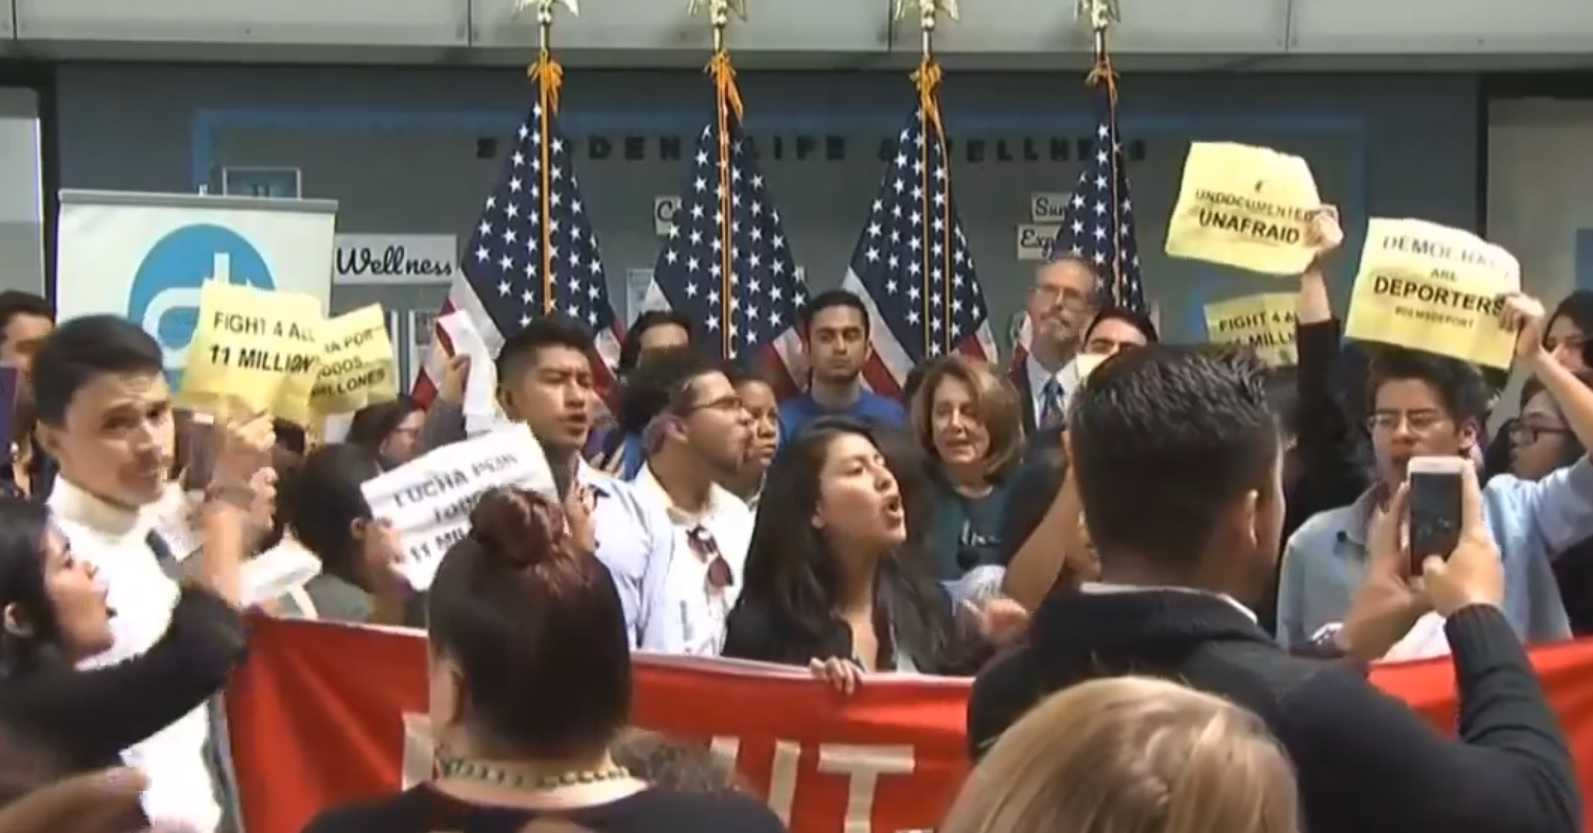 Nancy Pelosi shouted down by pro-immigration protesters in California